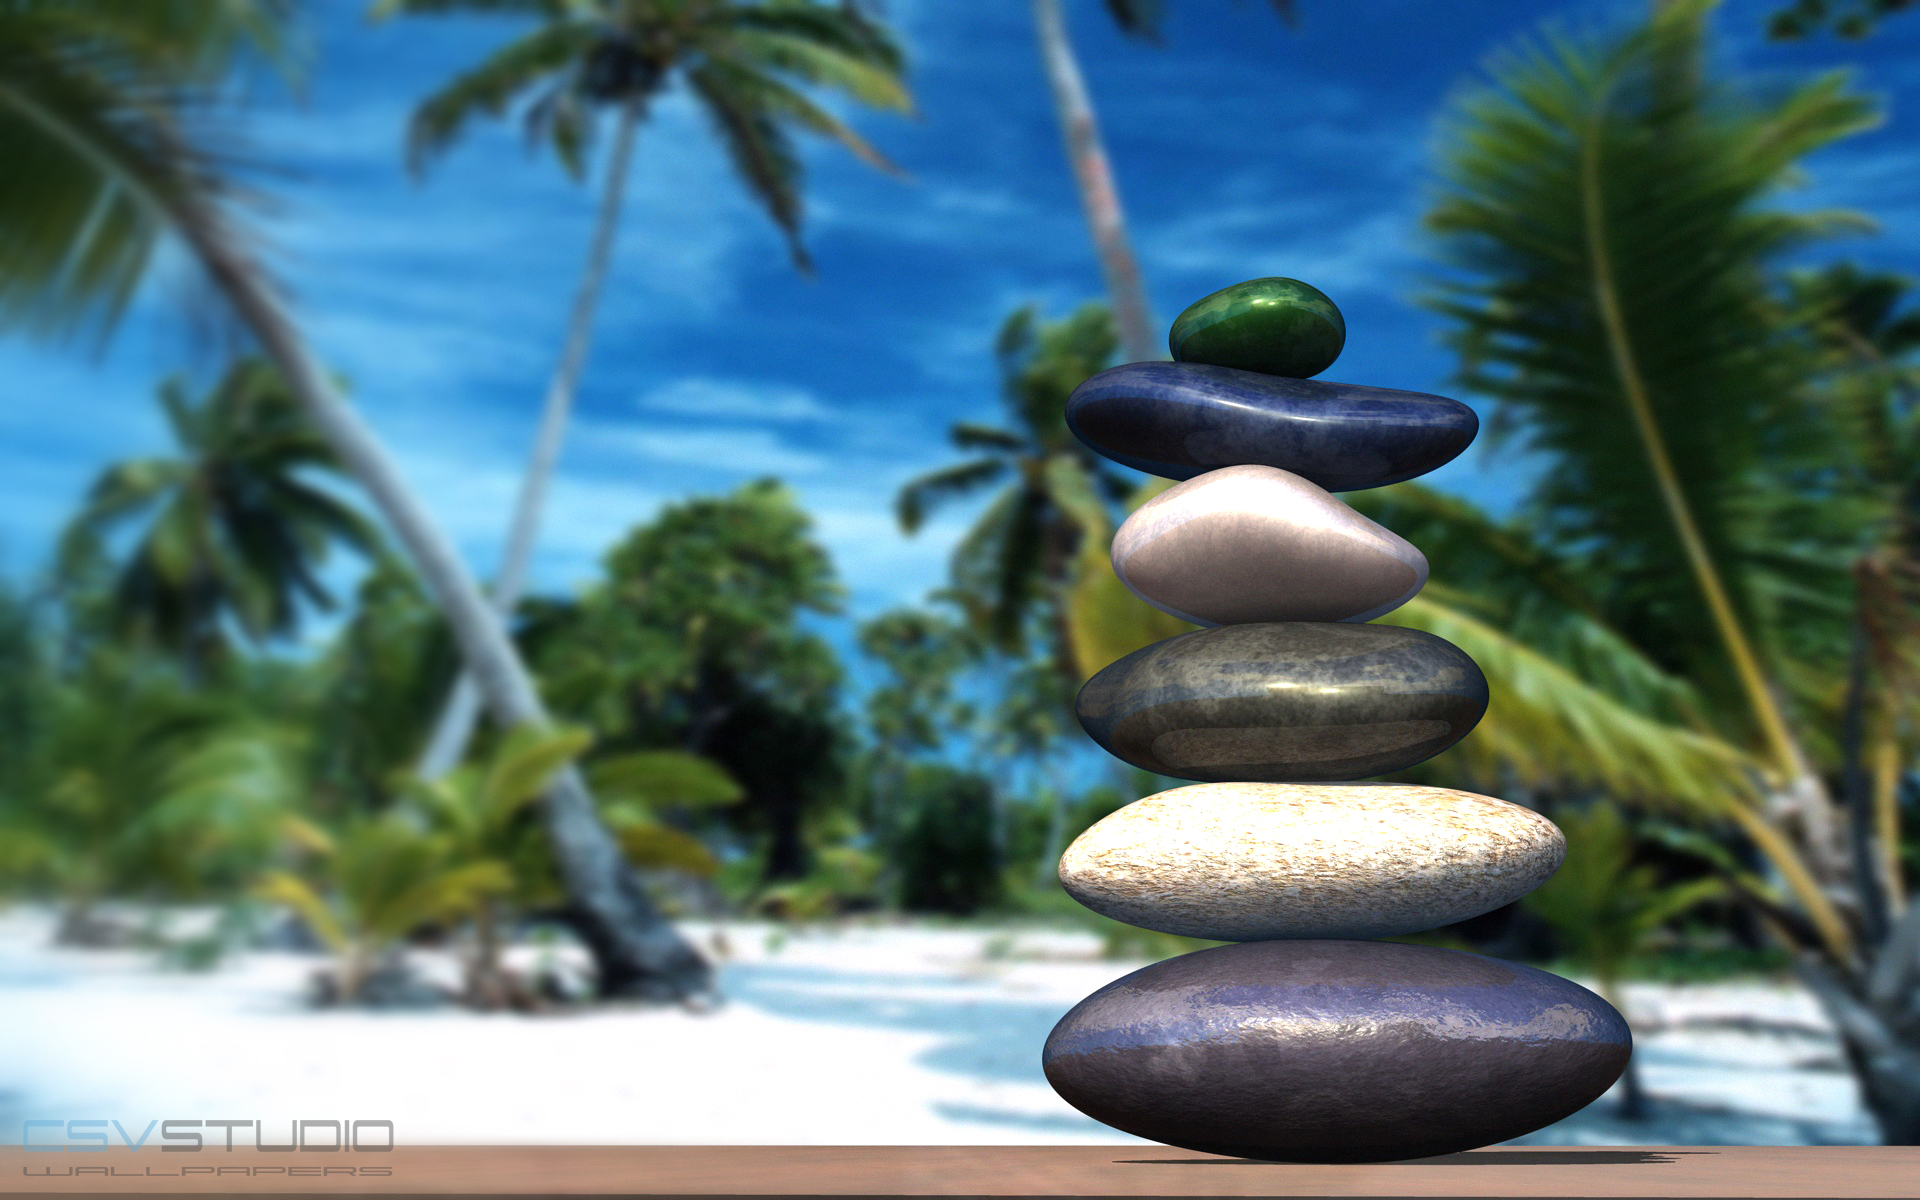 17223 download wallpaper Background, Stones, Still Life screensavers and pictures for free